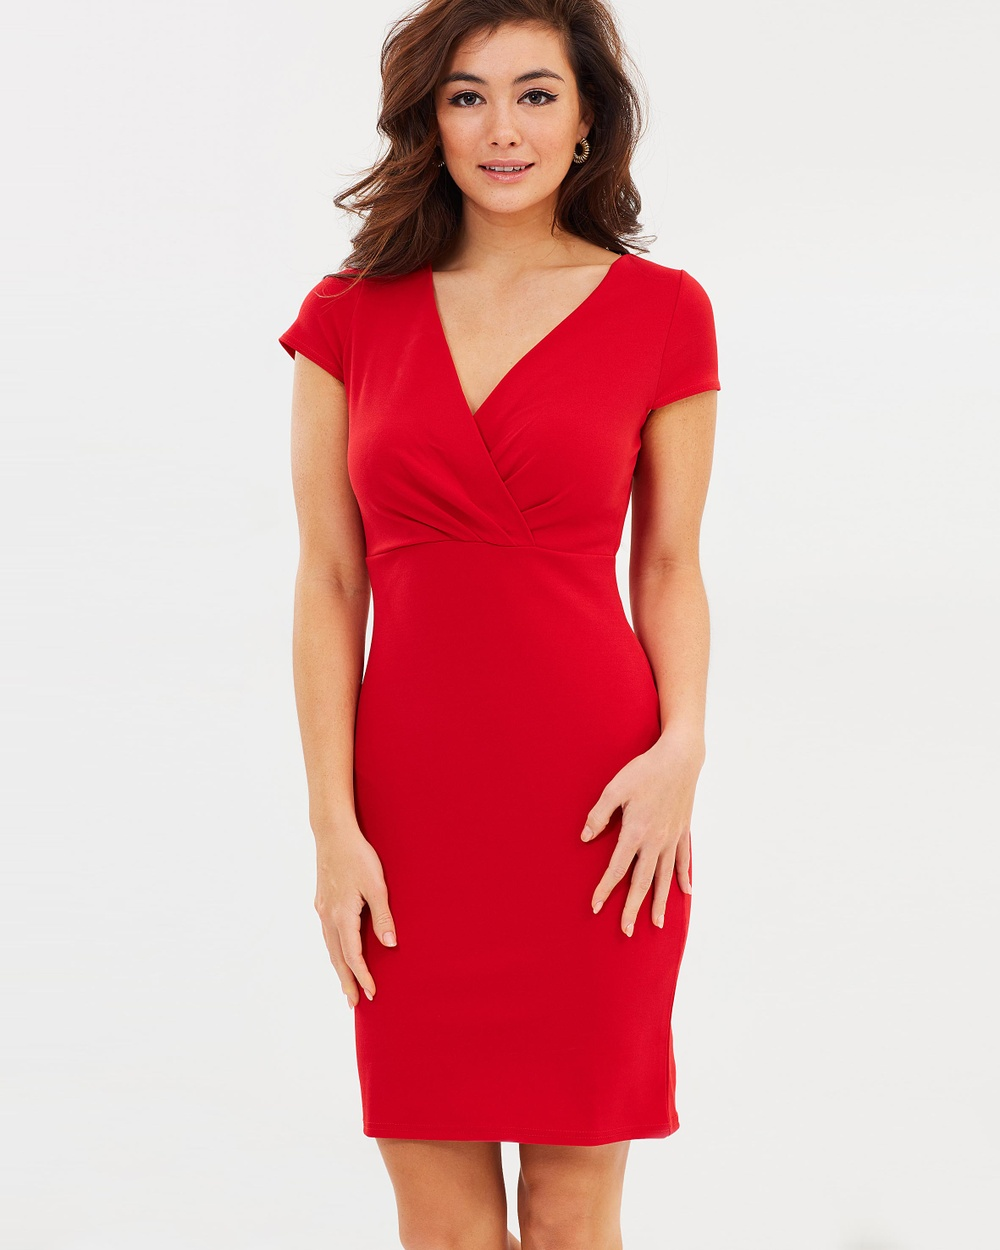 Dorothy Perkins Lace Back Bodycon Dress Bodycon Dresses Red Lace Back Bodycon Dress